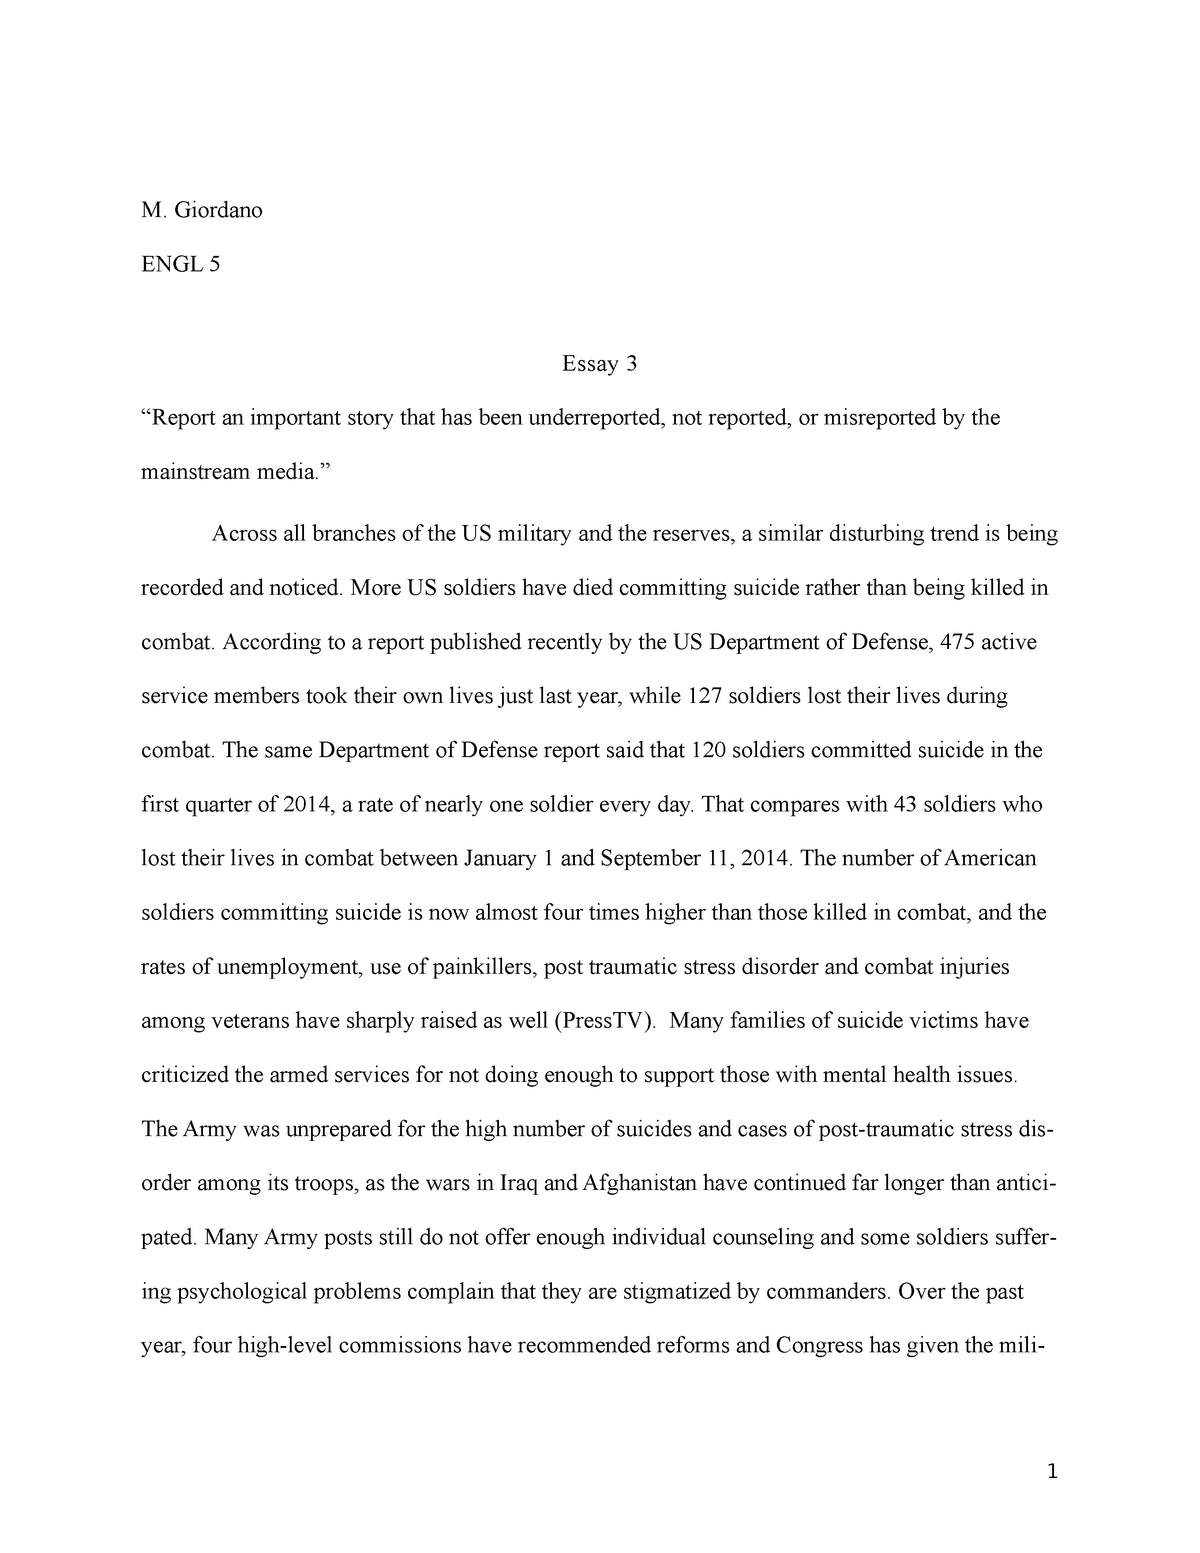 Synthesis Essay Topic Ideas  Importance Of Good Health Essay also How To Write An Essay For High School Engl A  Essay    Grade A   Engl A College Composition  Writing A Proposal Essay